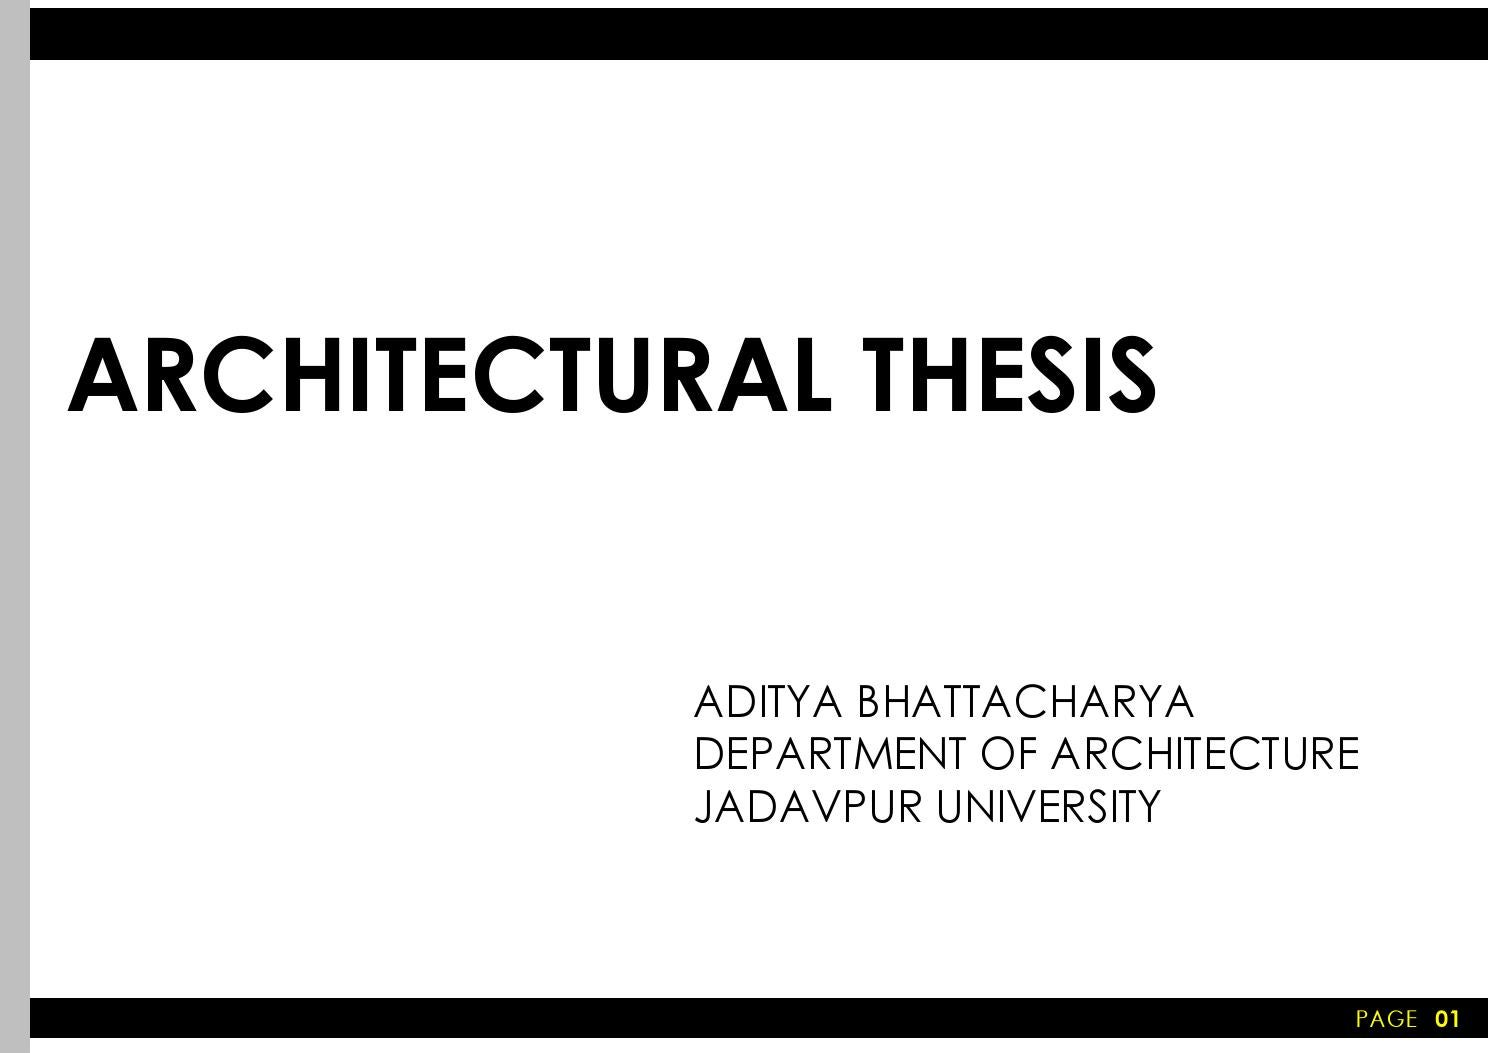 architectural thesis reports india The thesis supervisor or committee chair is listed in dissertations + theses for the doctor of philosophy in the history and theory of architecture or art.